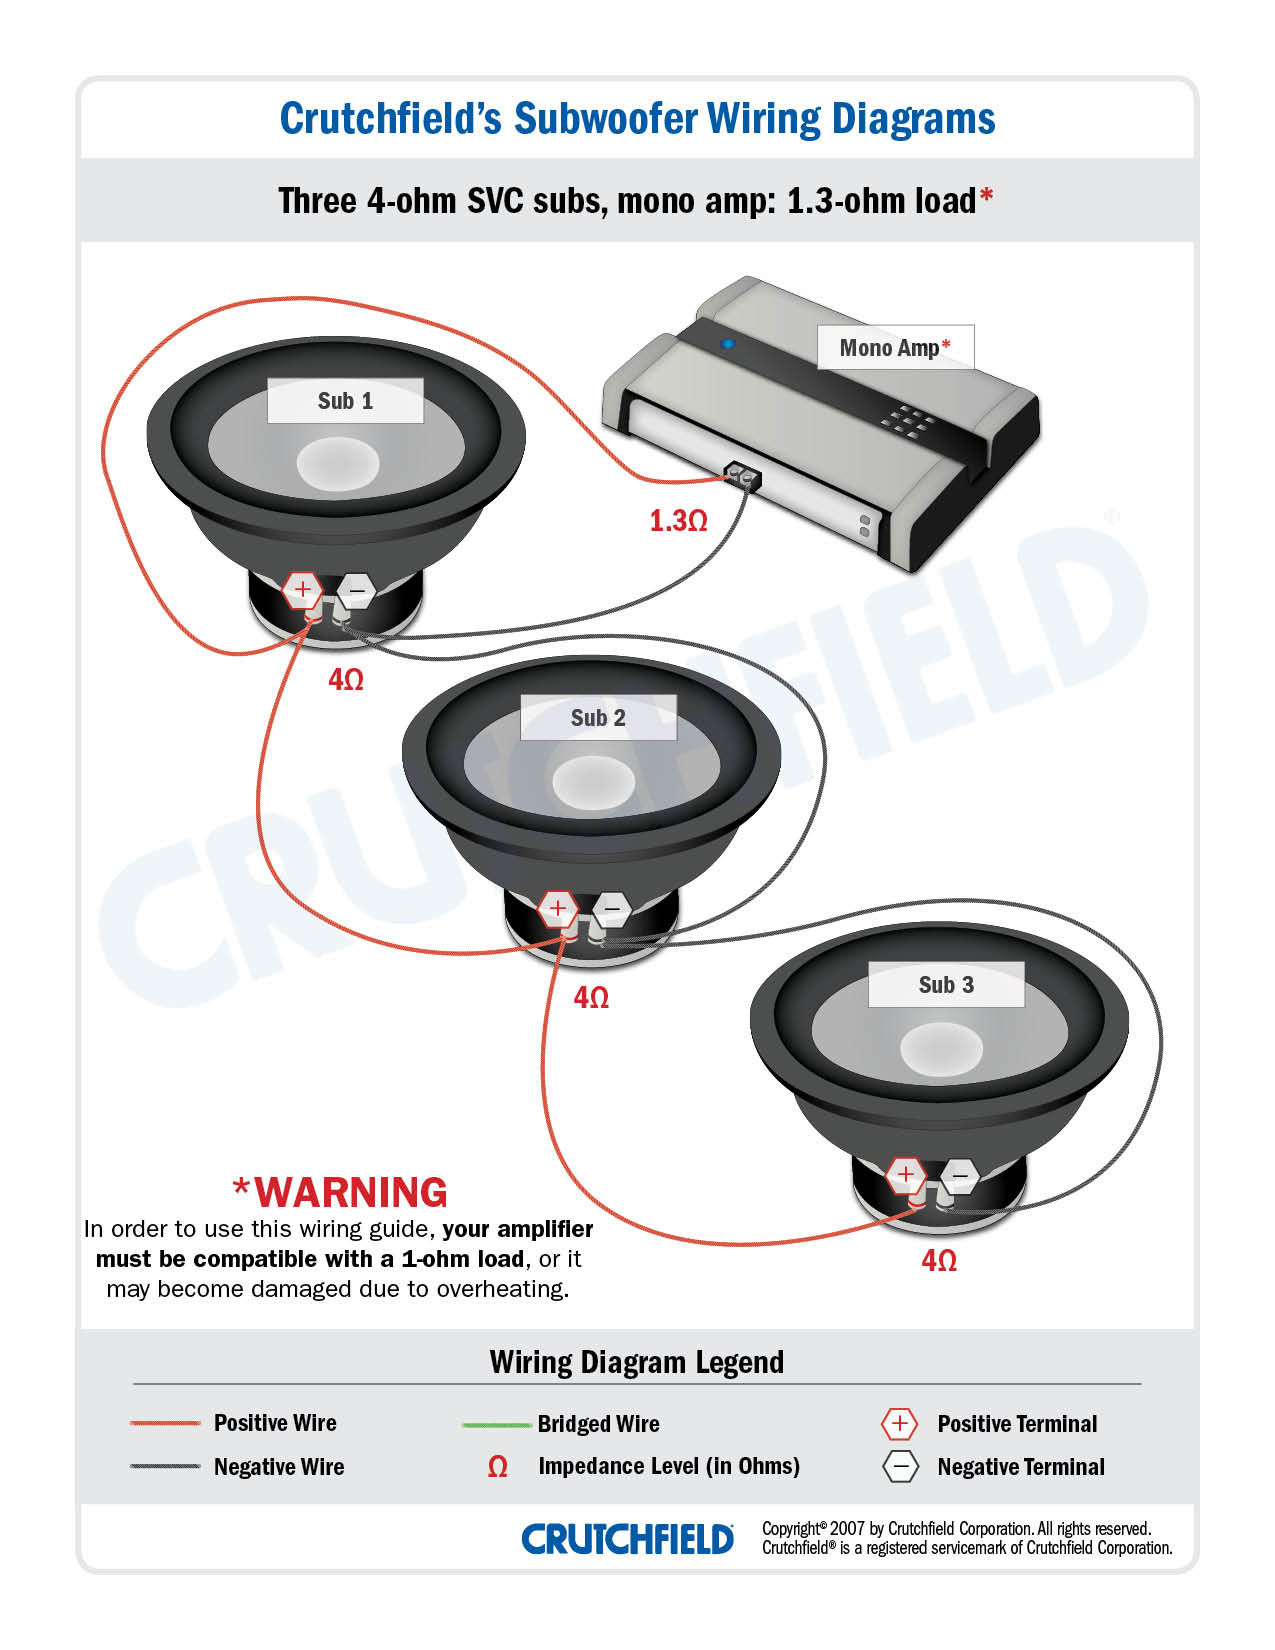 subwoofer wiring diagrams \u2014 how to wire your subs Logitech Subwoofer and Speaker Circuit Board Wiring Diagram those subs can take an amp twice as powerful, if you want